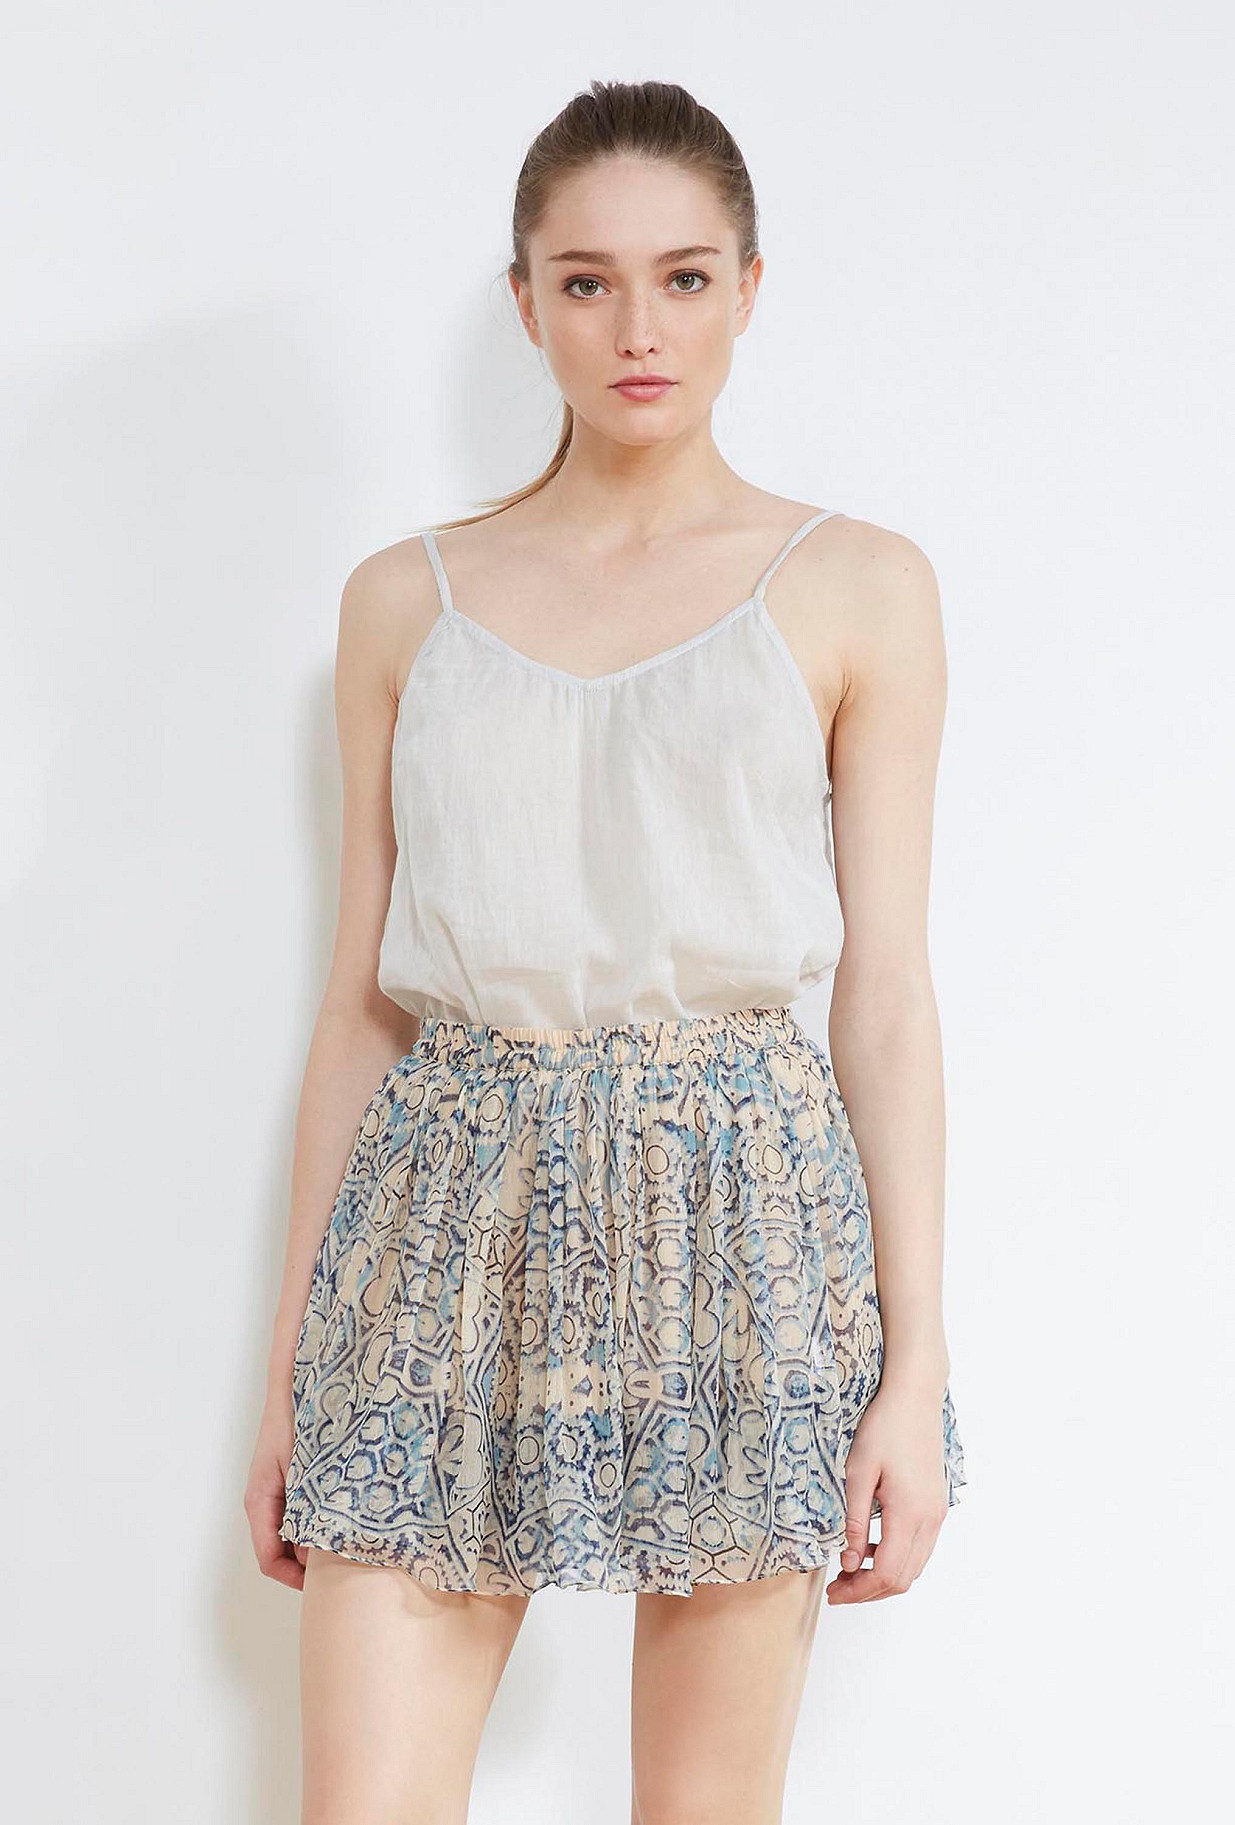 clothes store SKIRT  Fran french designer fashion Paris